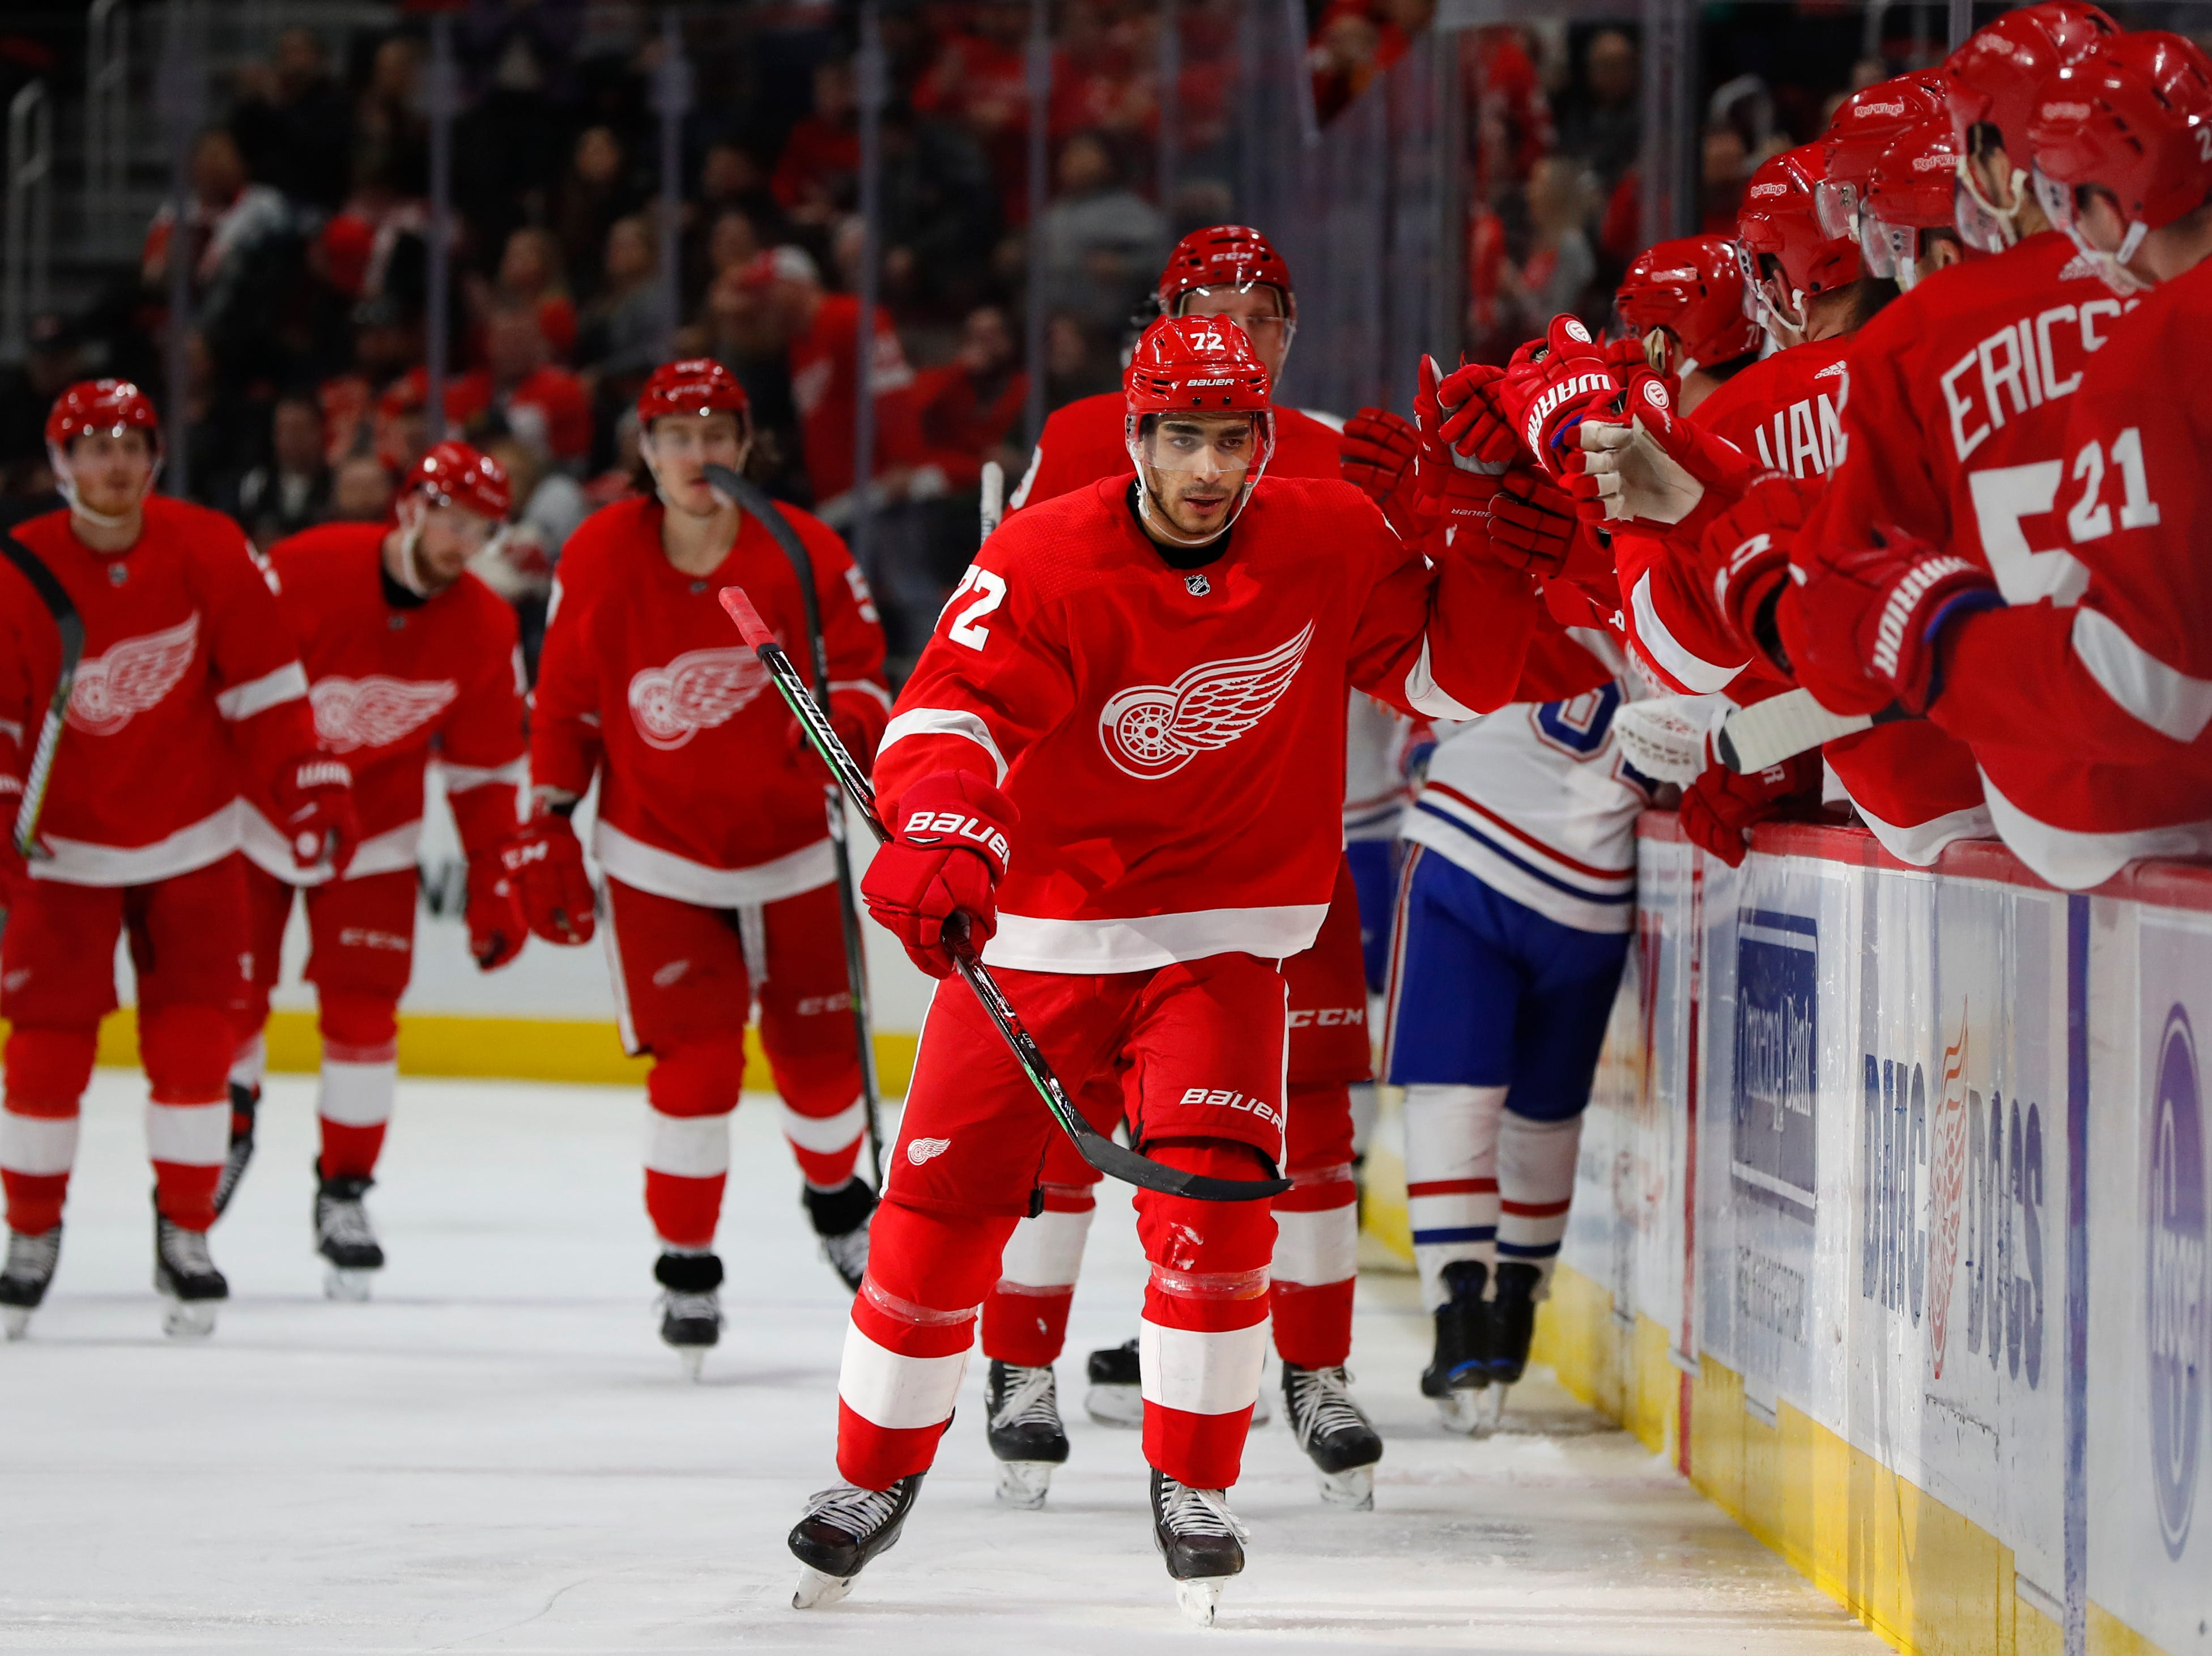 Detroit Red Wings center Andreas Athanasiou celebrates his goal against the Montreal Canadiens in the third period.